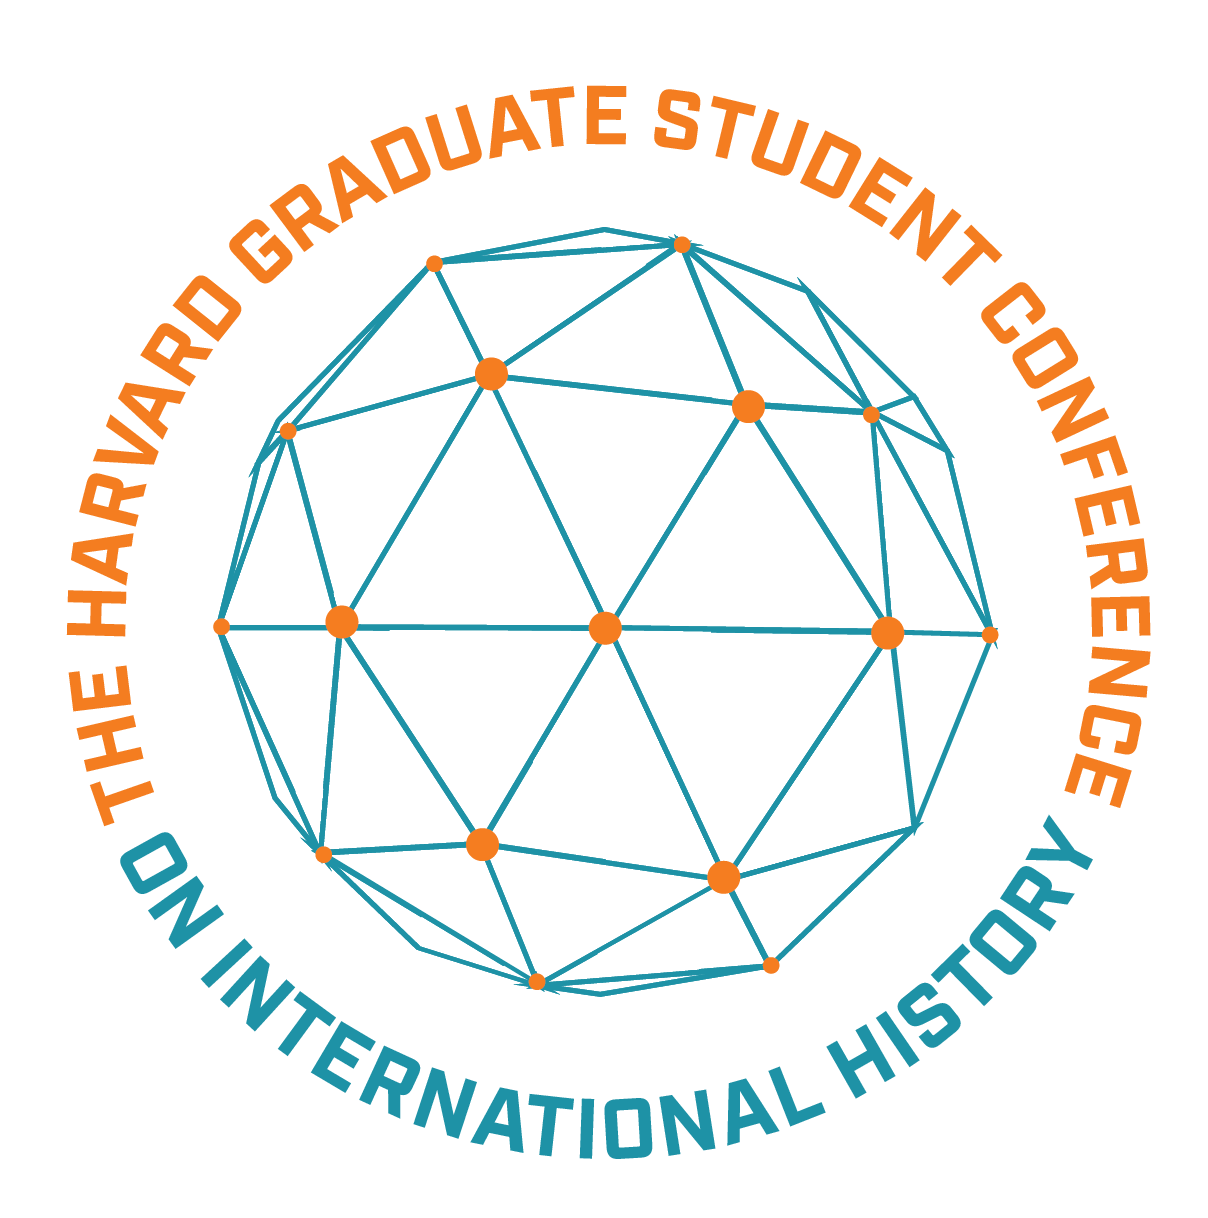 Harvard Graduate Conference on International History